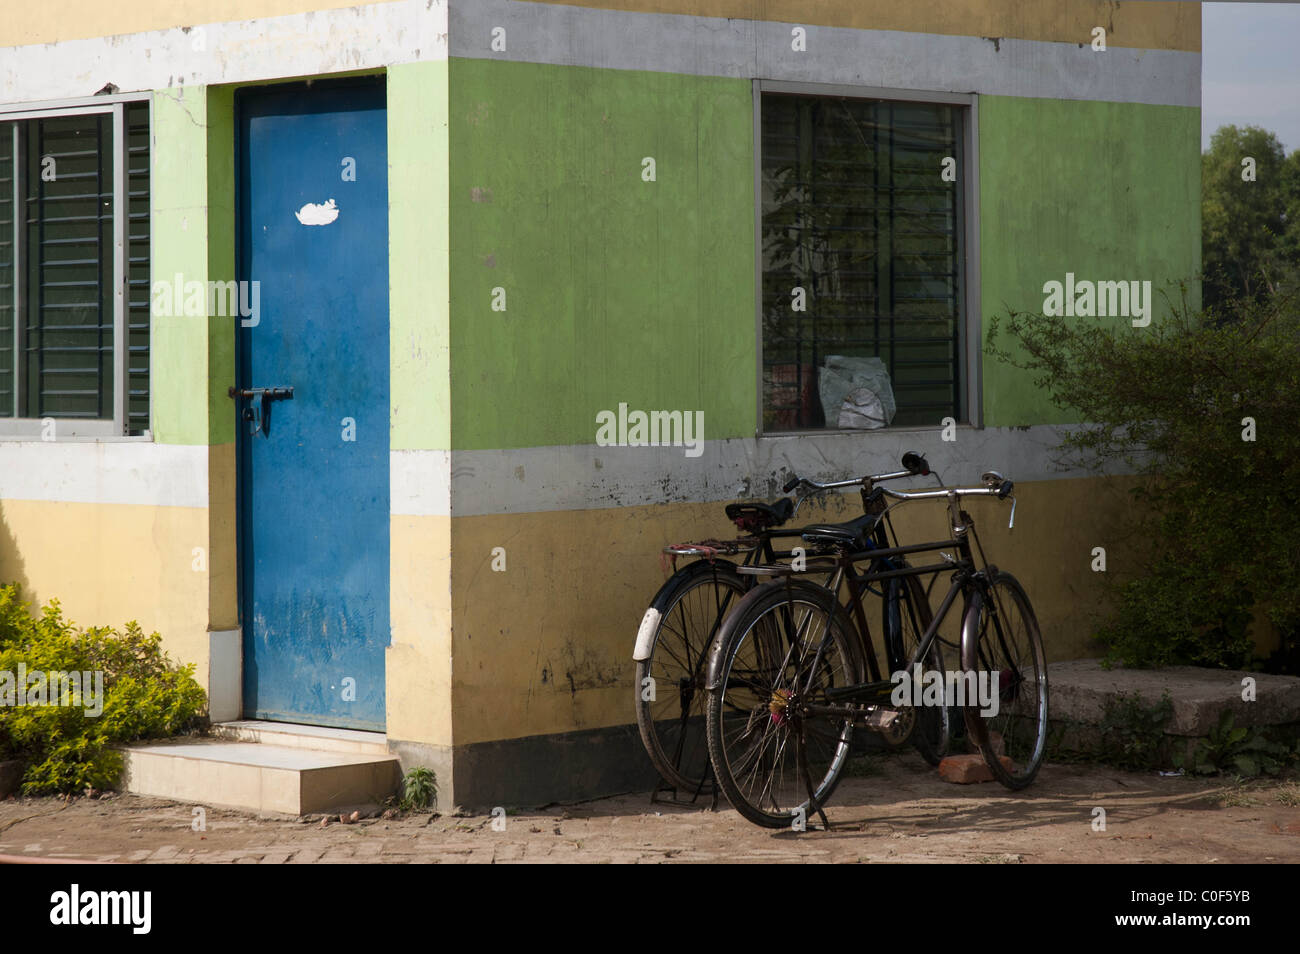 Two old-fashioned bicycles leant against a wall outside a small outbuilding at a service station in Bangladesh - Stock Image